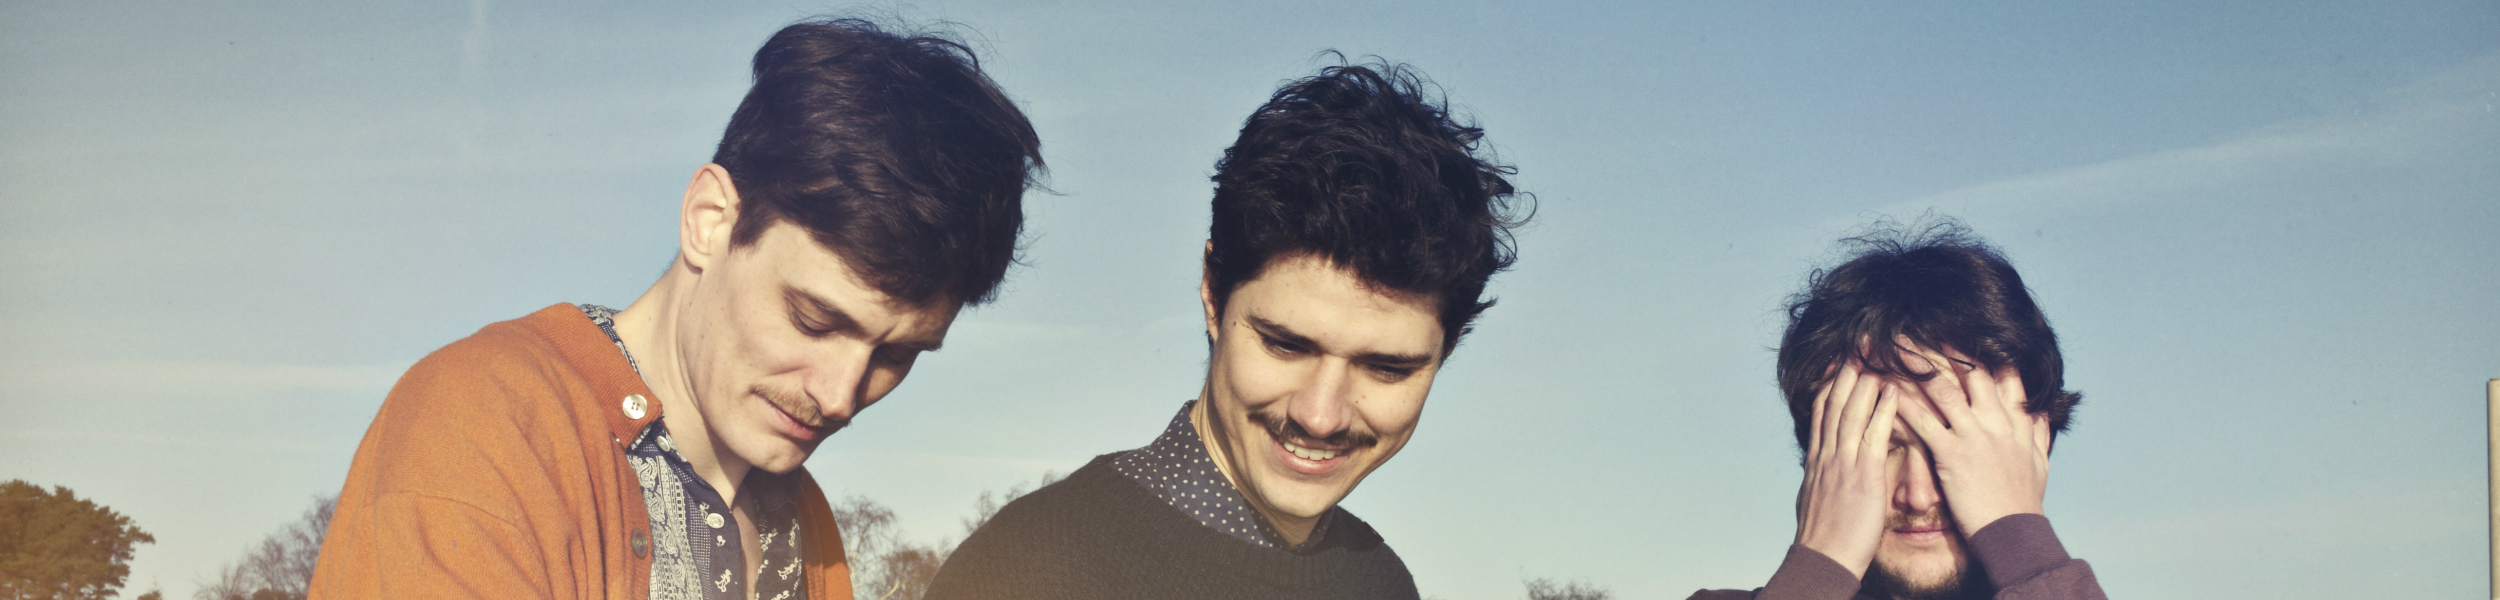 Efterklang - Watch the New Video for 'Apples' by Efterklang